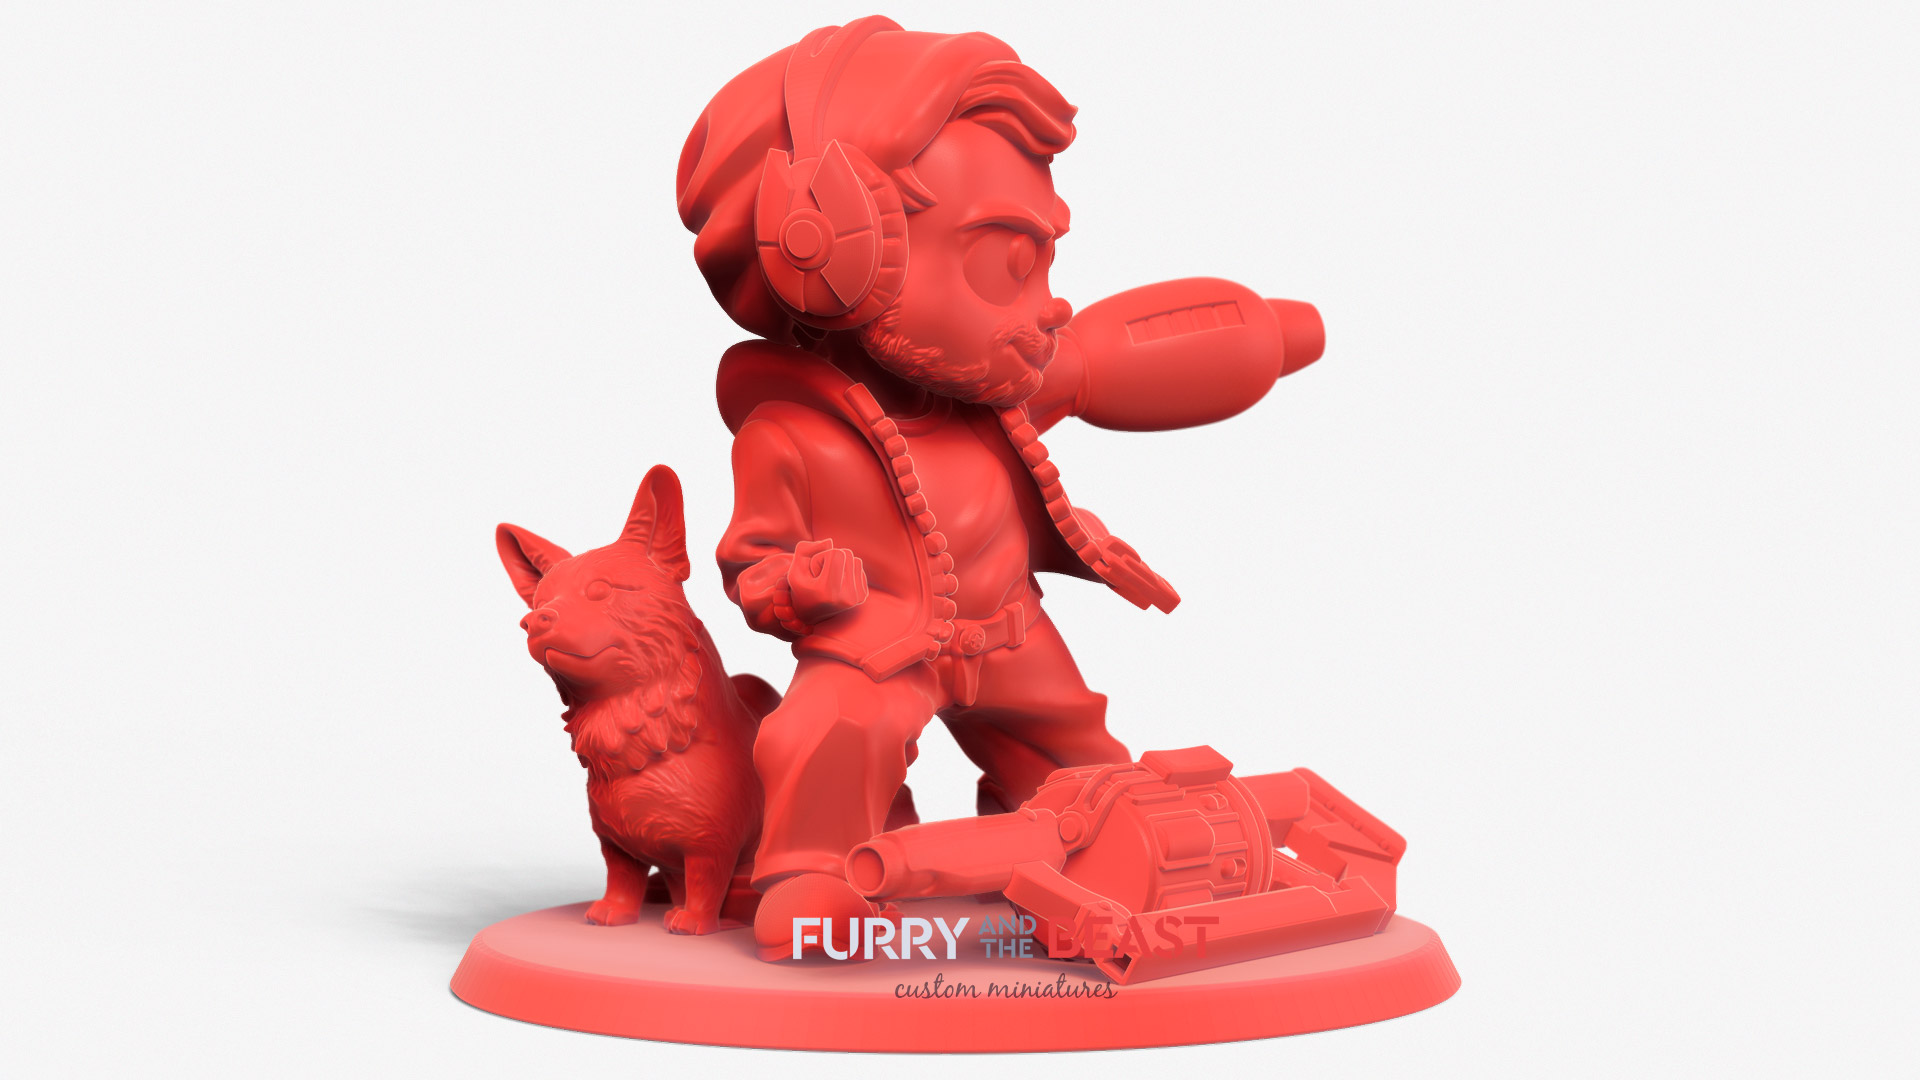 display chibi style figurine custom sculpted with corgy dog